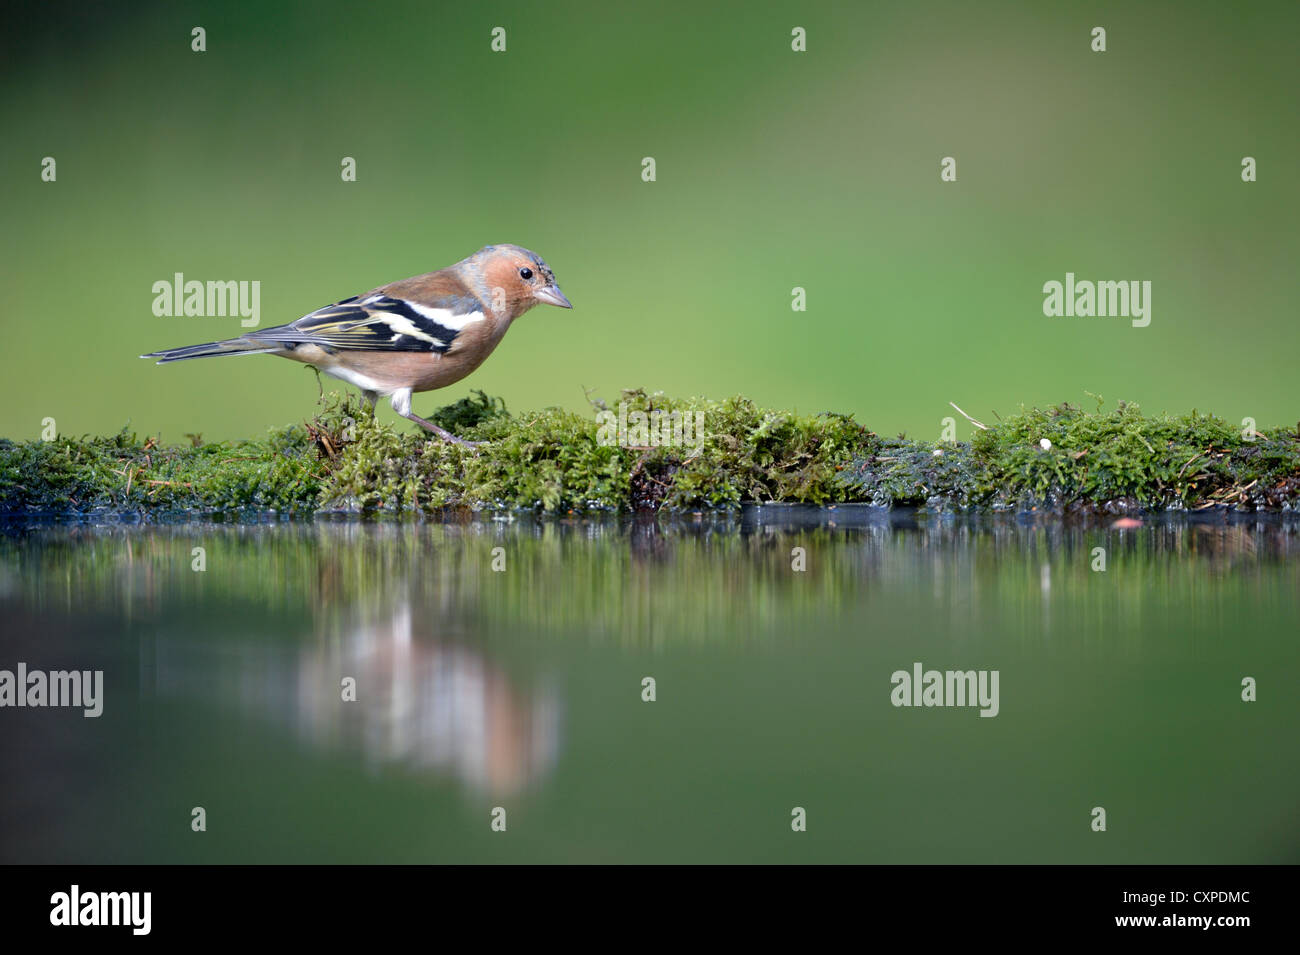 Common chaffinch (Fringilla coelebs) - Stock Image